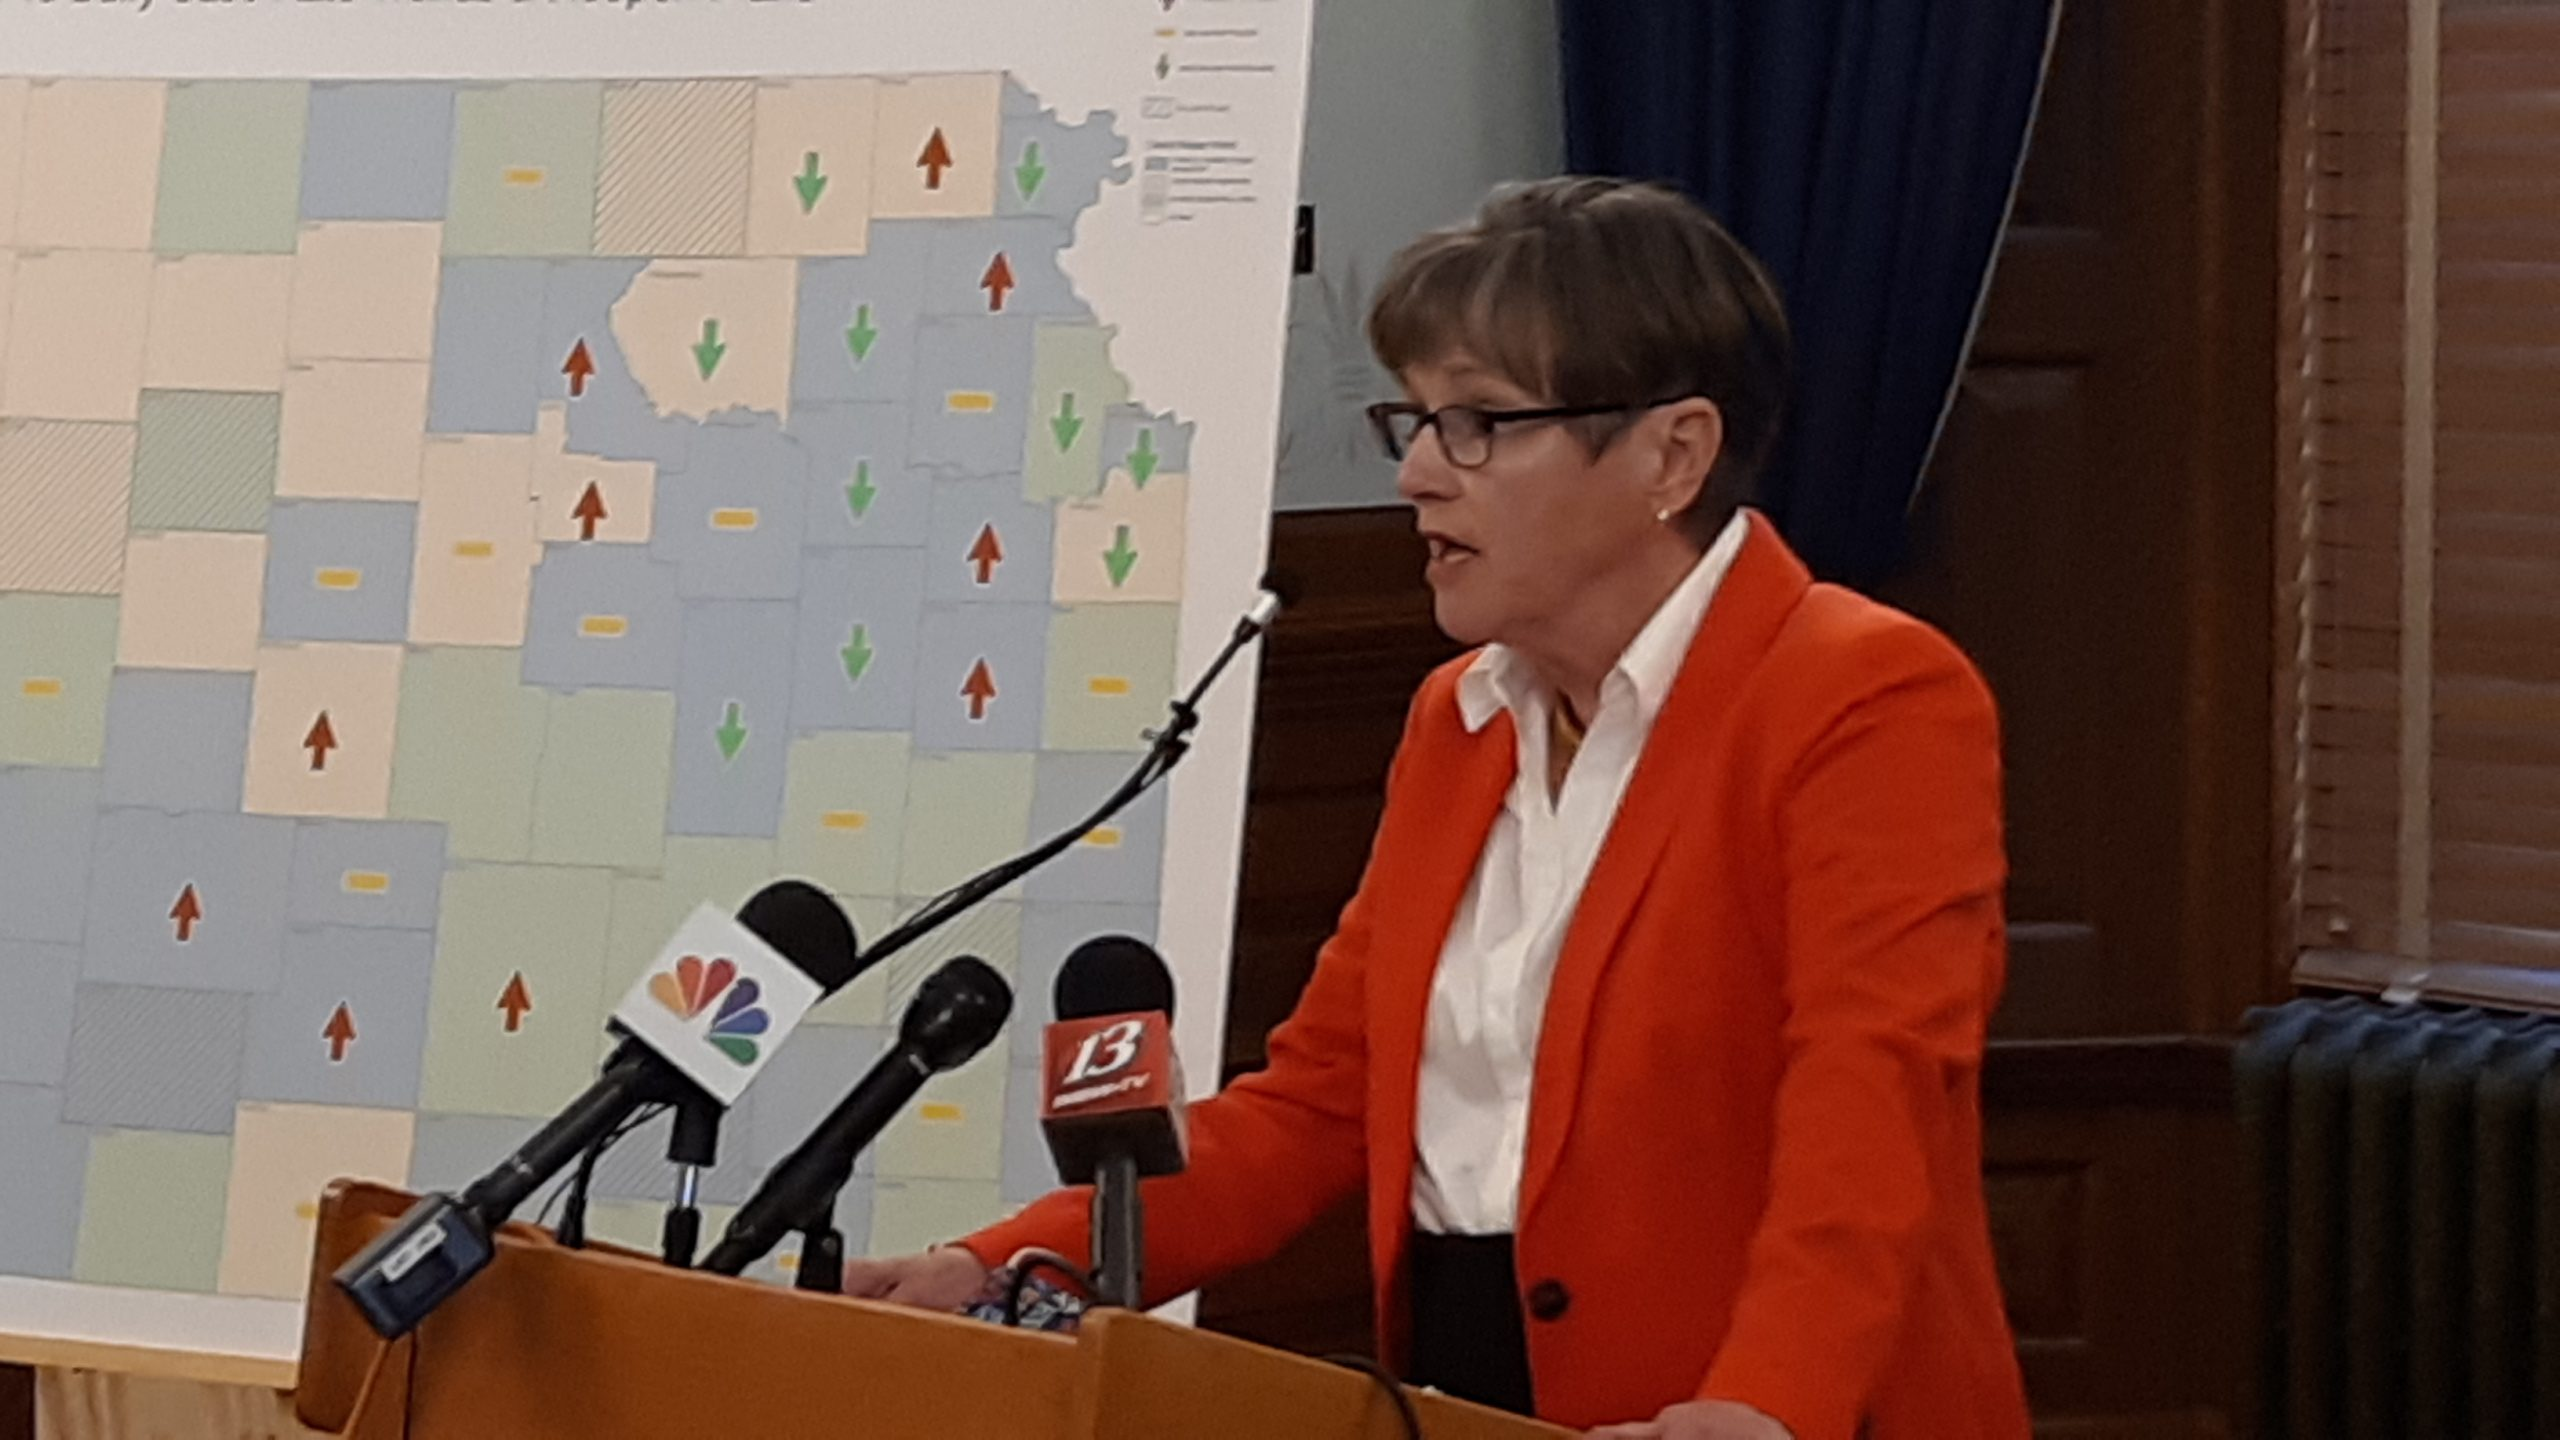 Gov. Laura Kelly says passage by Missouri voters of Medicaid expansion leaves Kansas in a five-state group with Colorado, Nebraska and Oklahoma still resisting a federal program extending health care to low- and moderate-income people. (Tim Carpenter/Kansas Reflector)